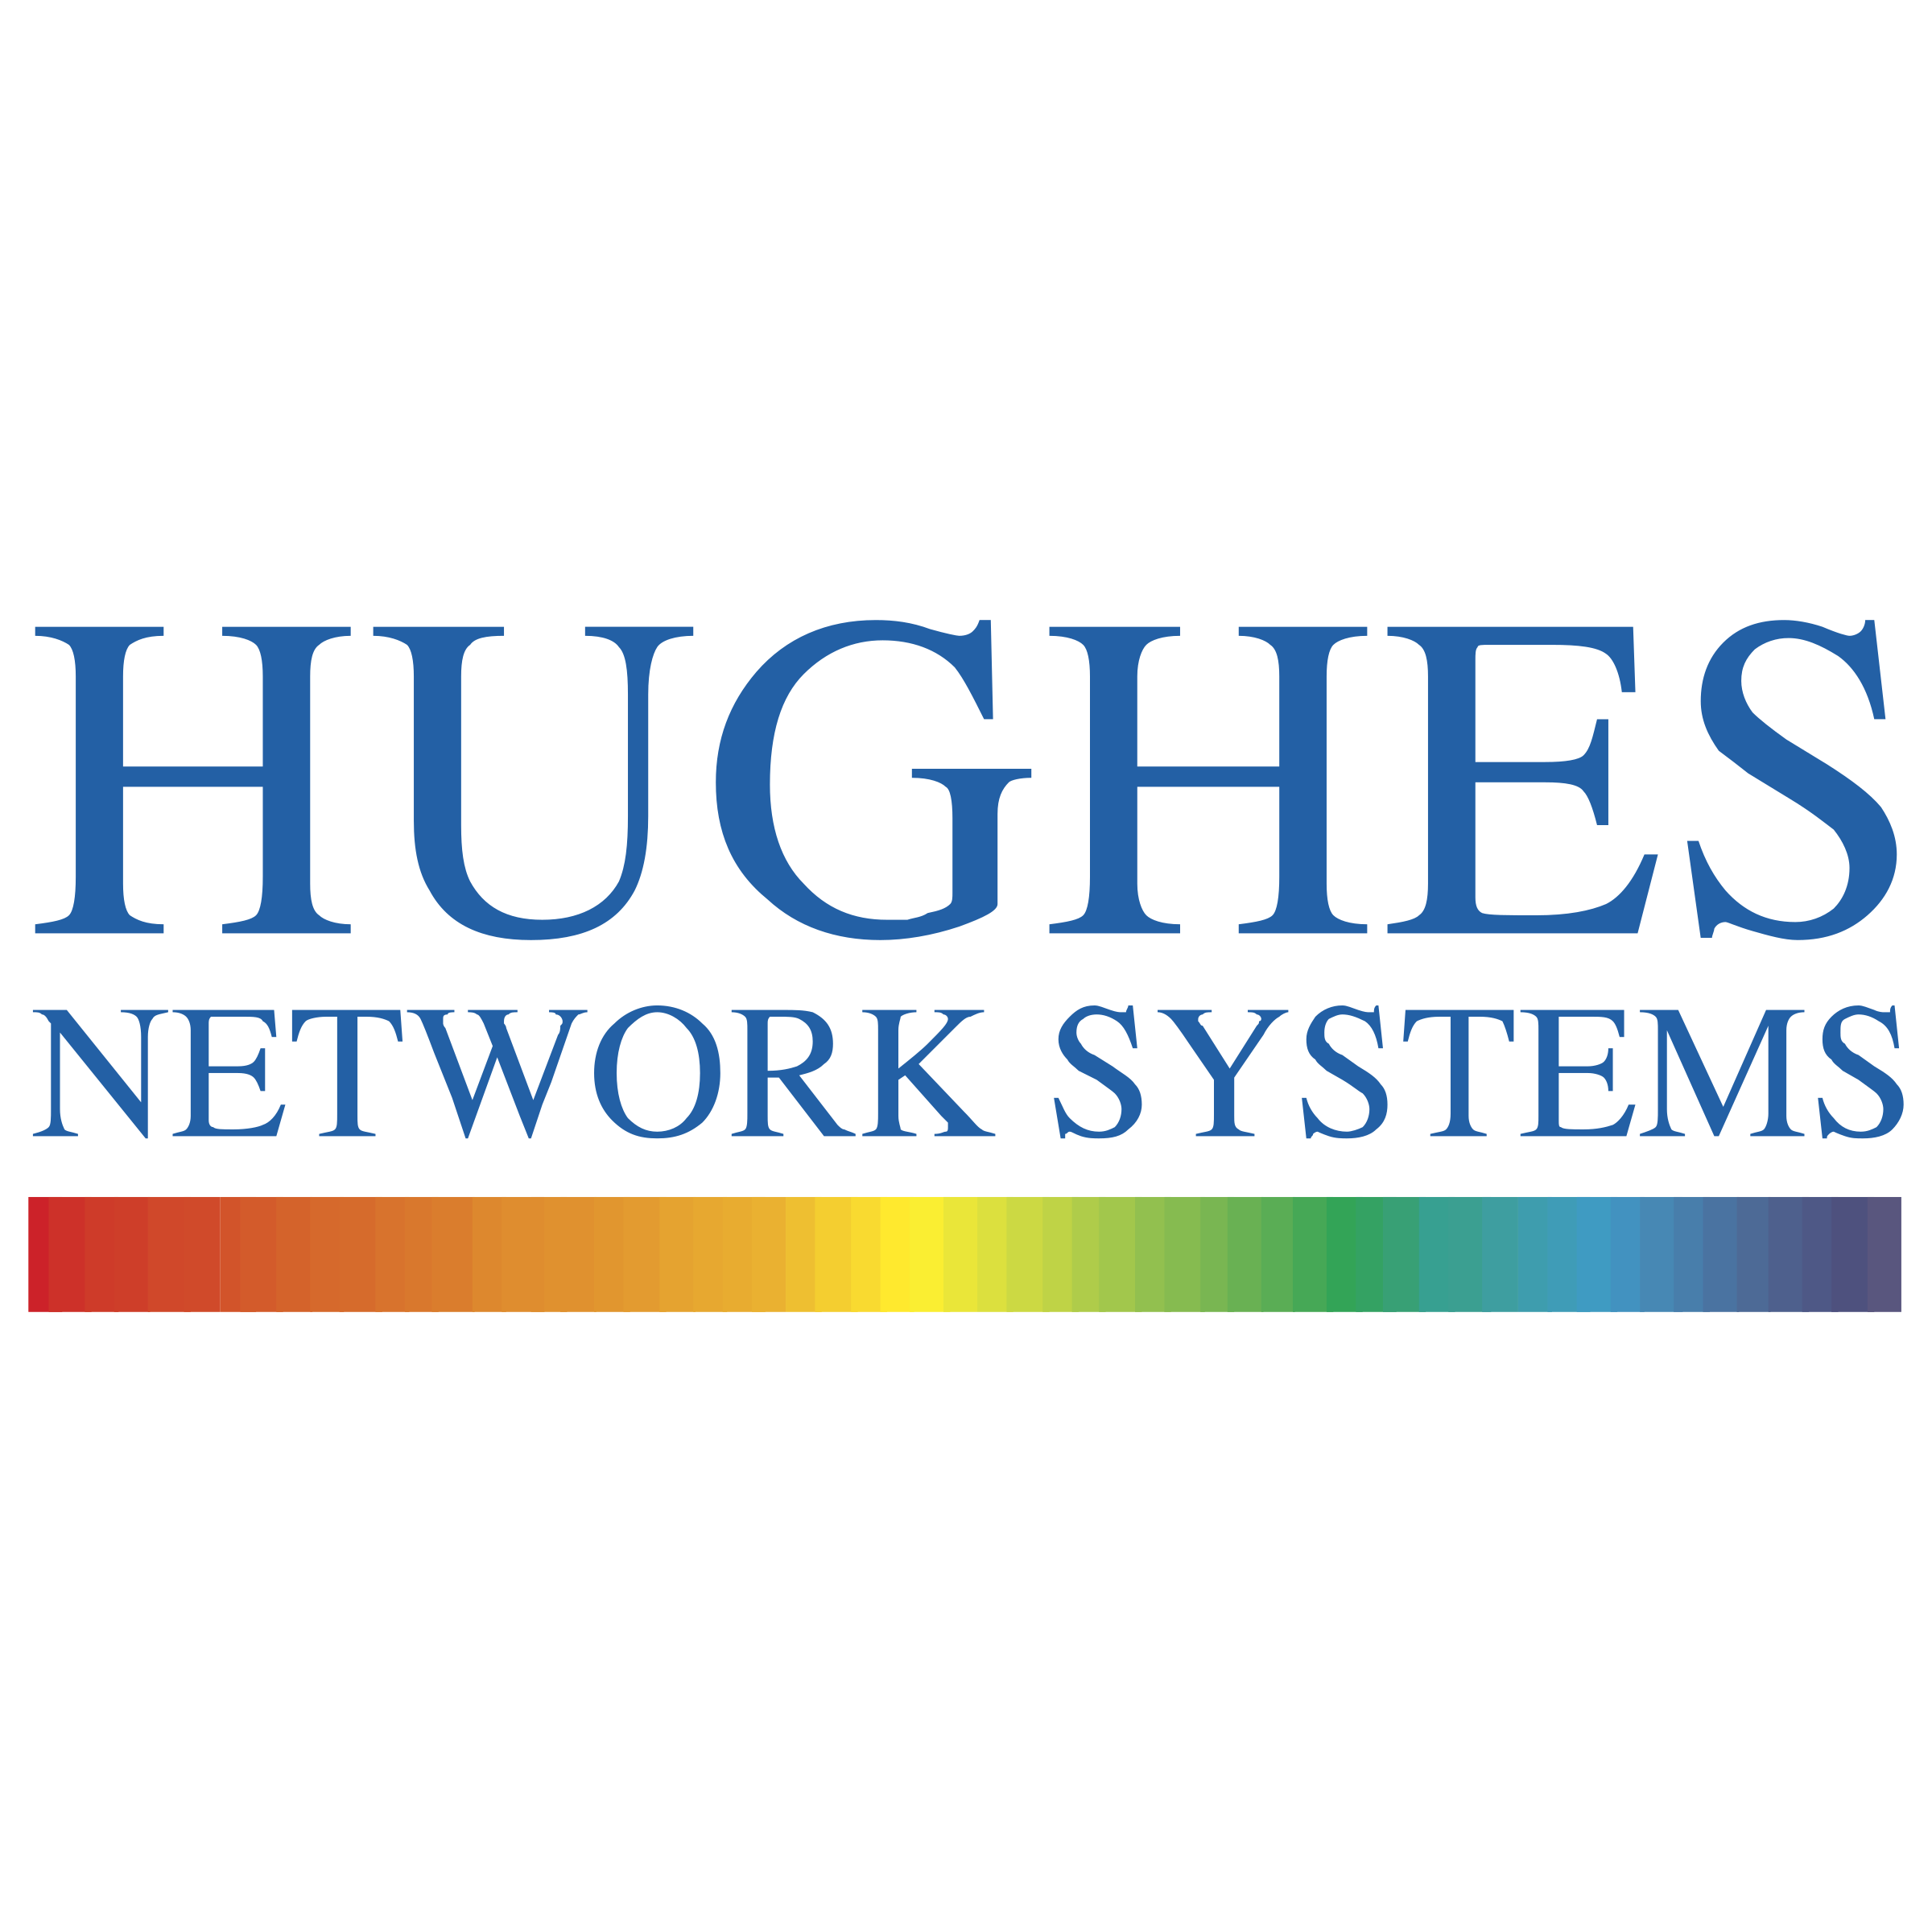 Network Systems logo